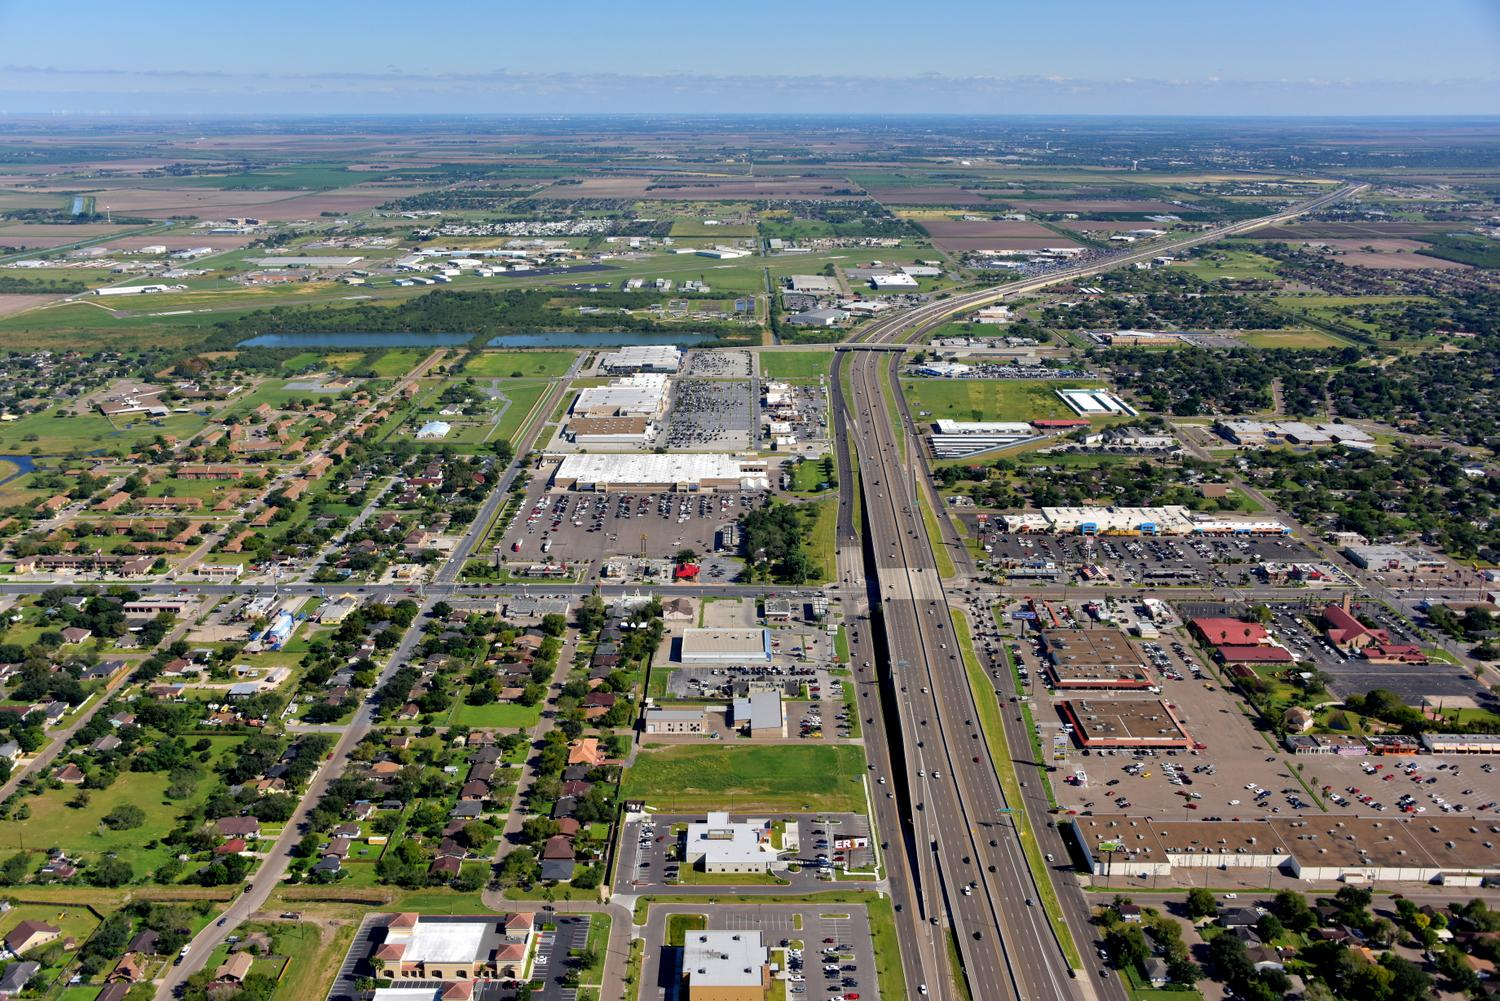 Hwy 83 Looking East, Weslaco, Texas - Weslaco Aerial Photographer - Aerial Drone Image - Aerial Drone Video - Weslaco, TX - Rio Grande Valley, Texas